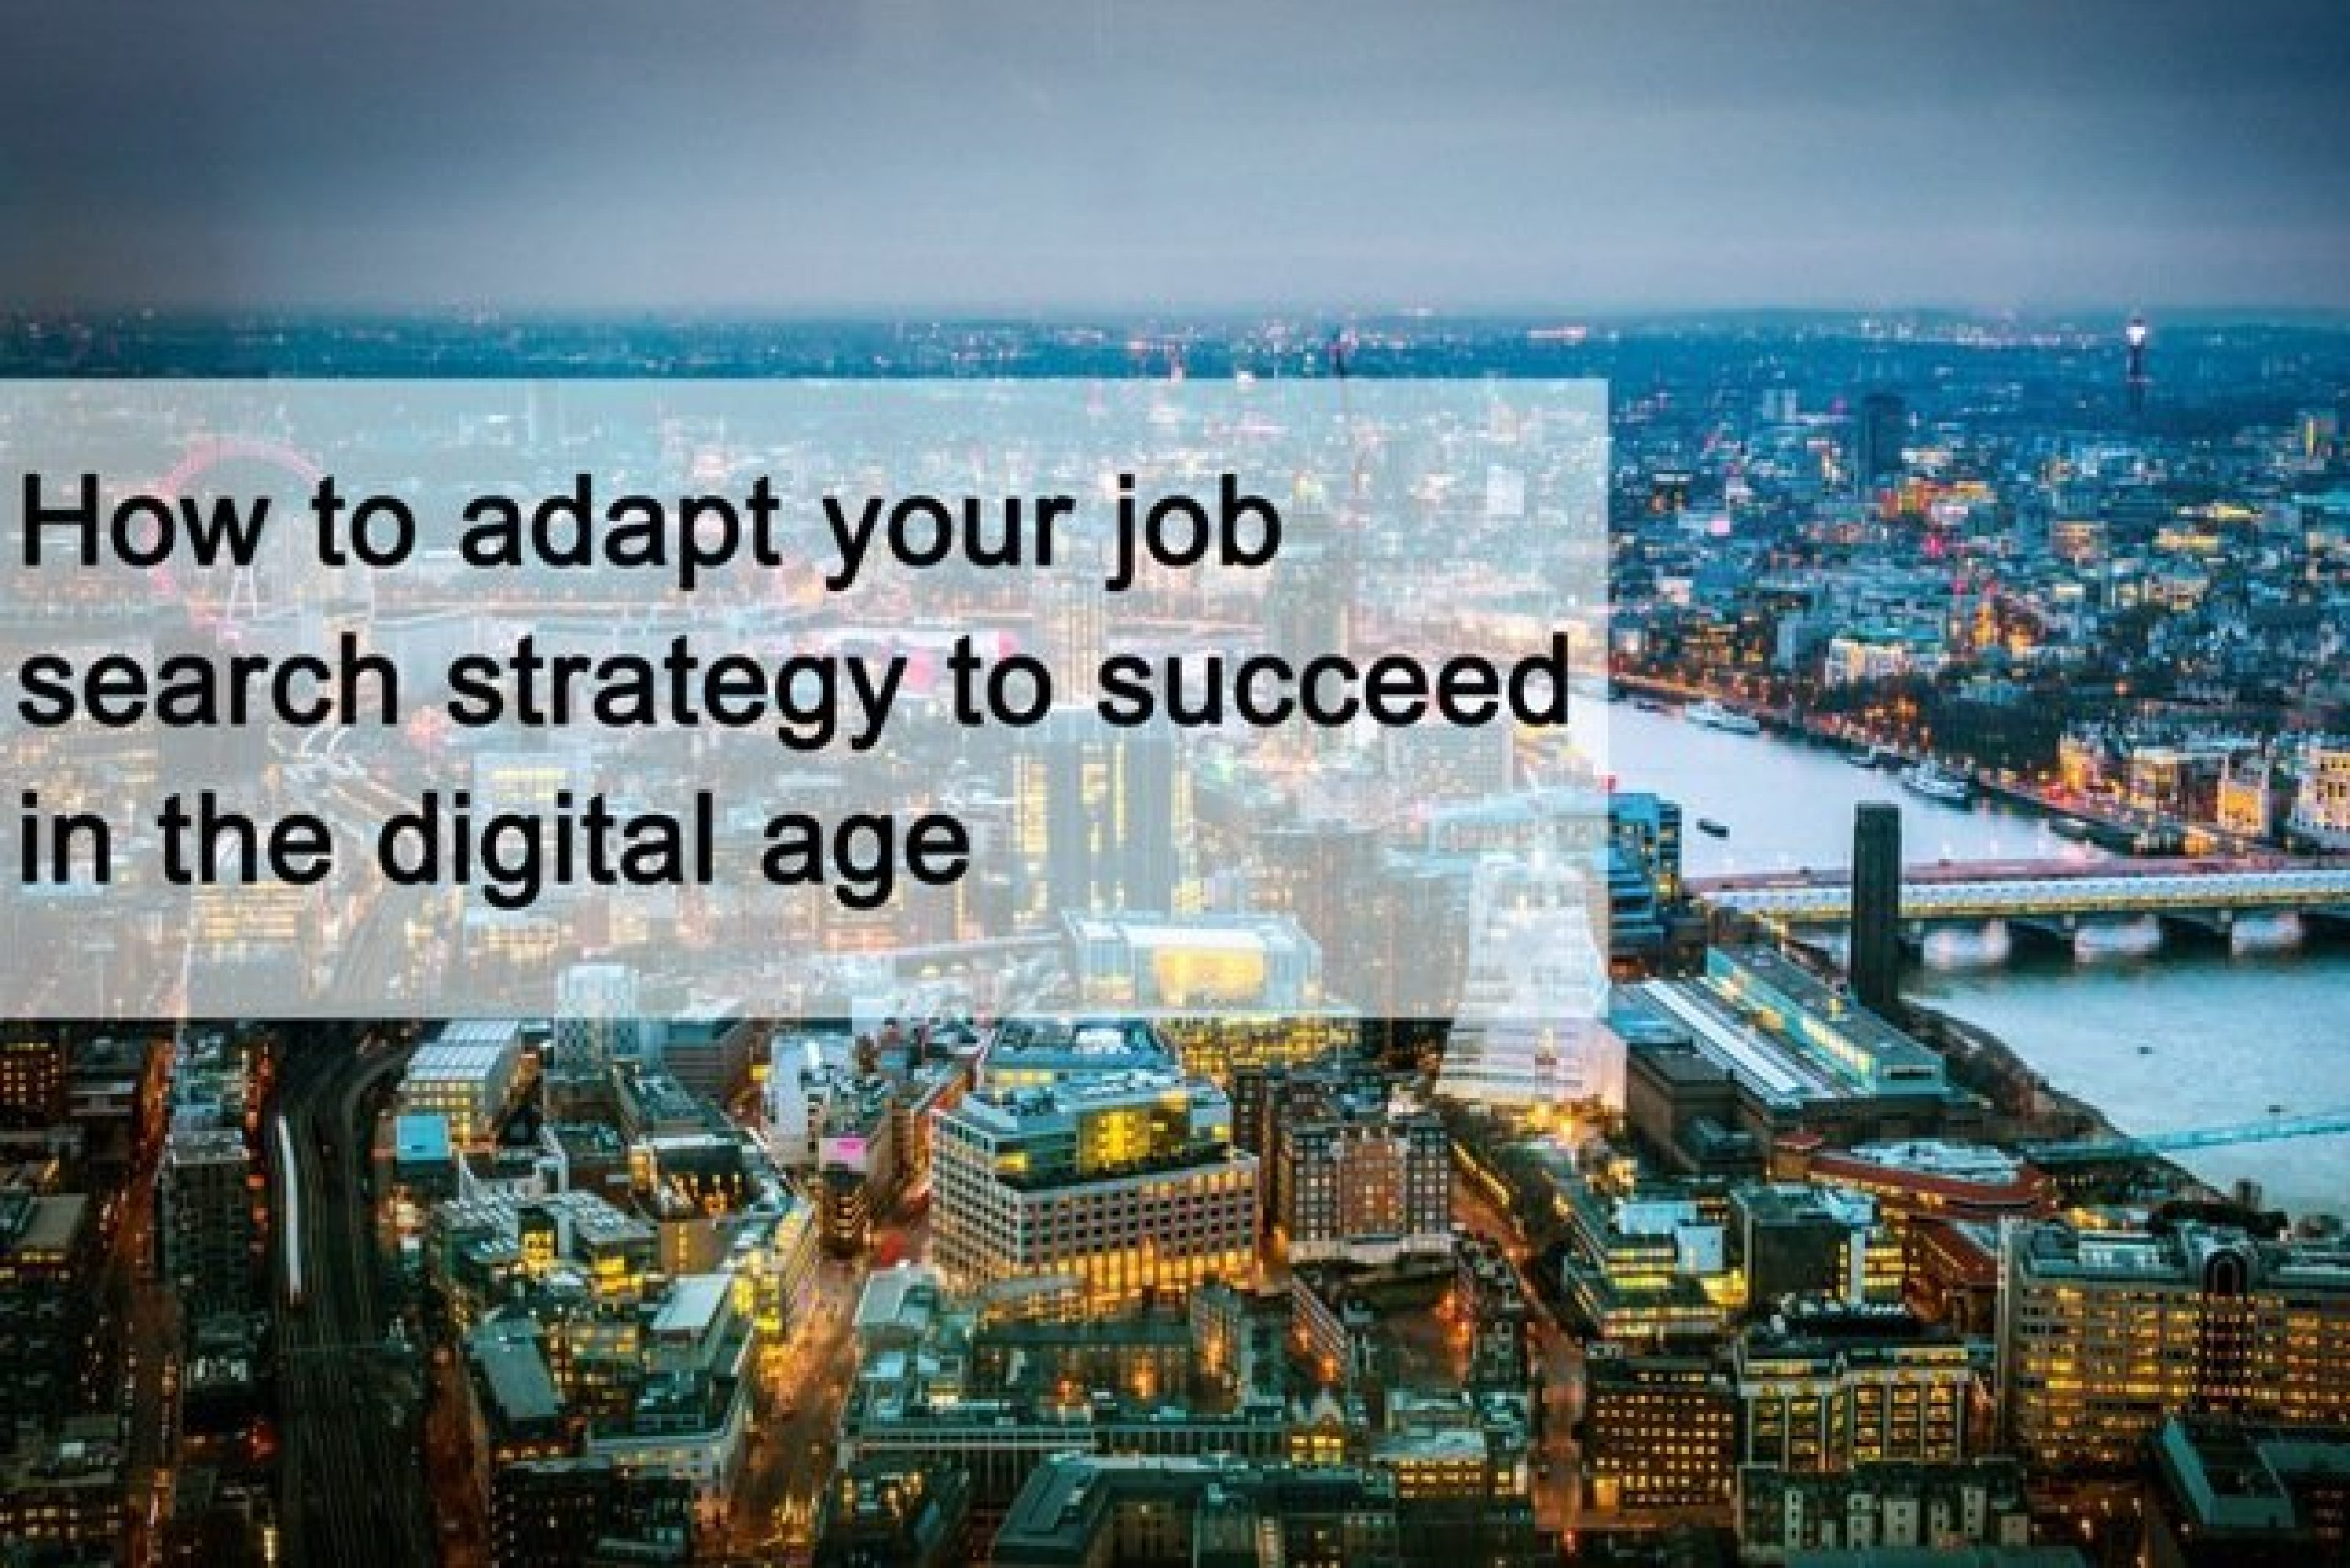 How-to-adapt-your-job-search-strategy-to-succeed-in-the-digital-age